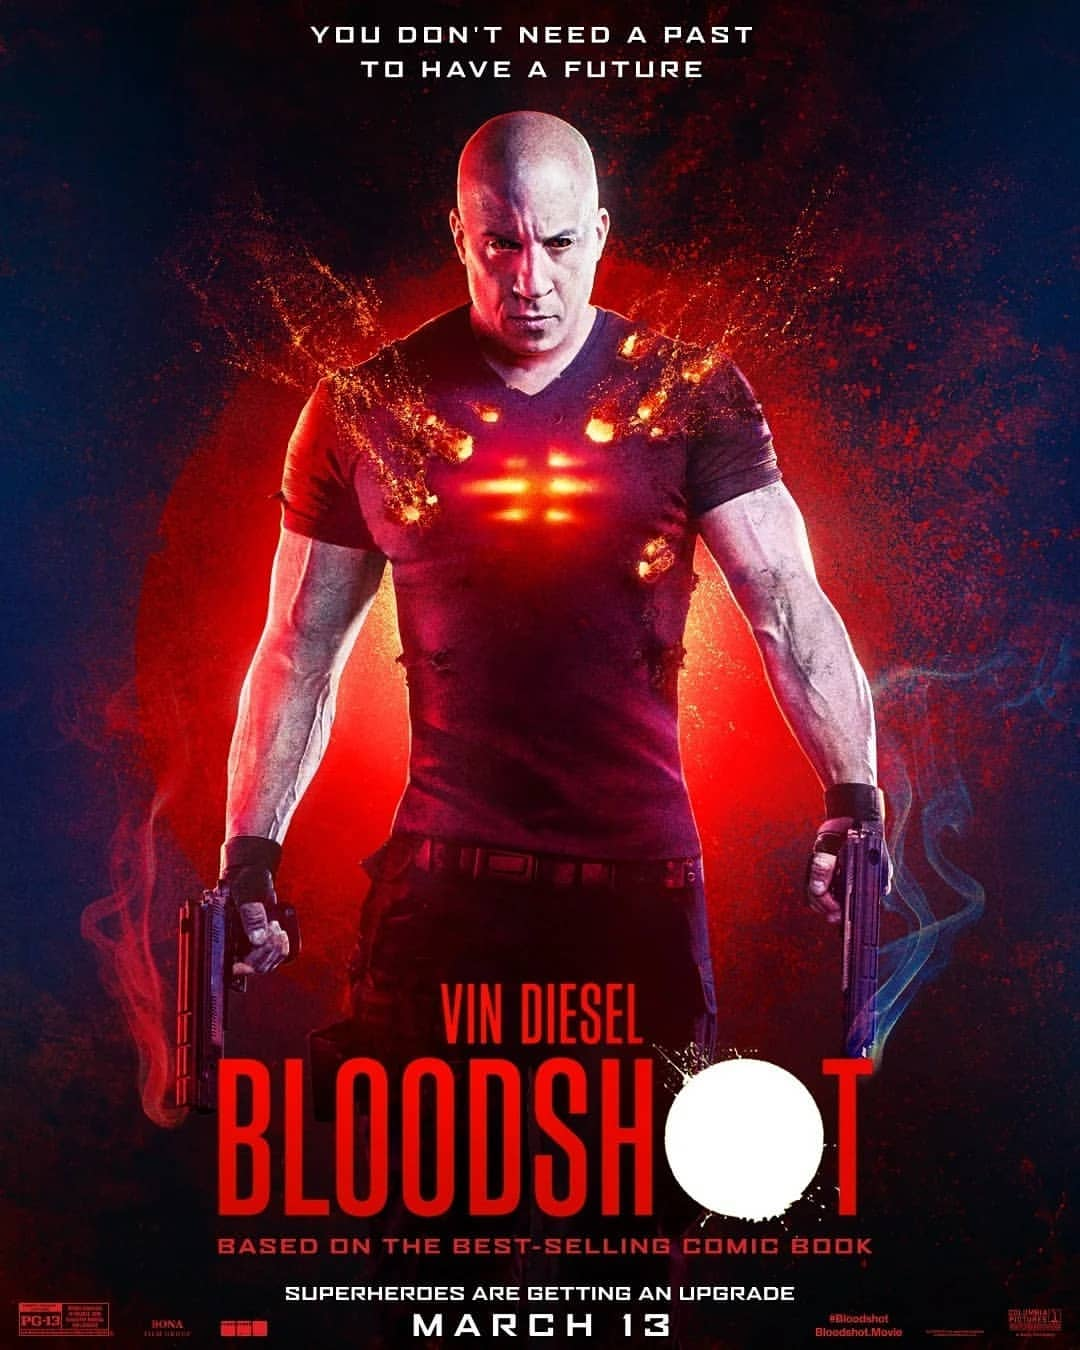 Hollywood's Movie Review: Bloodshot